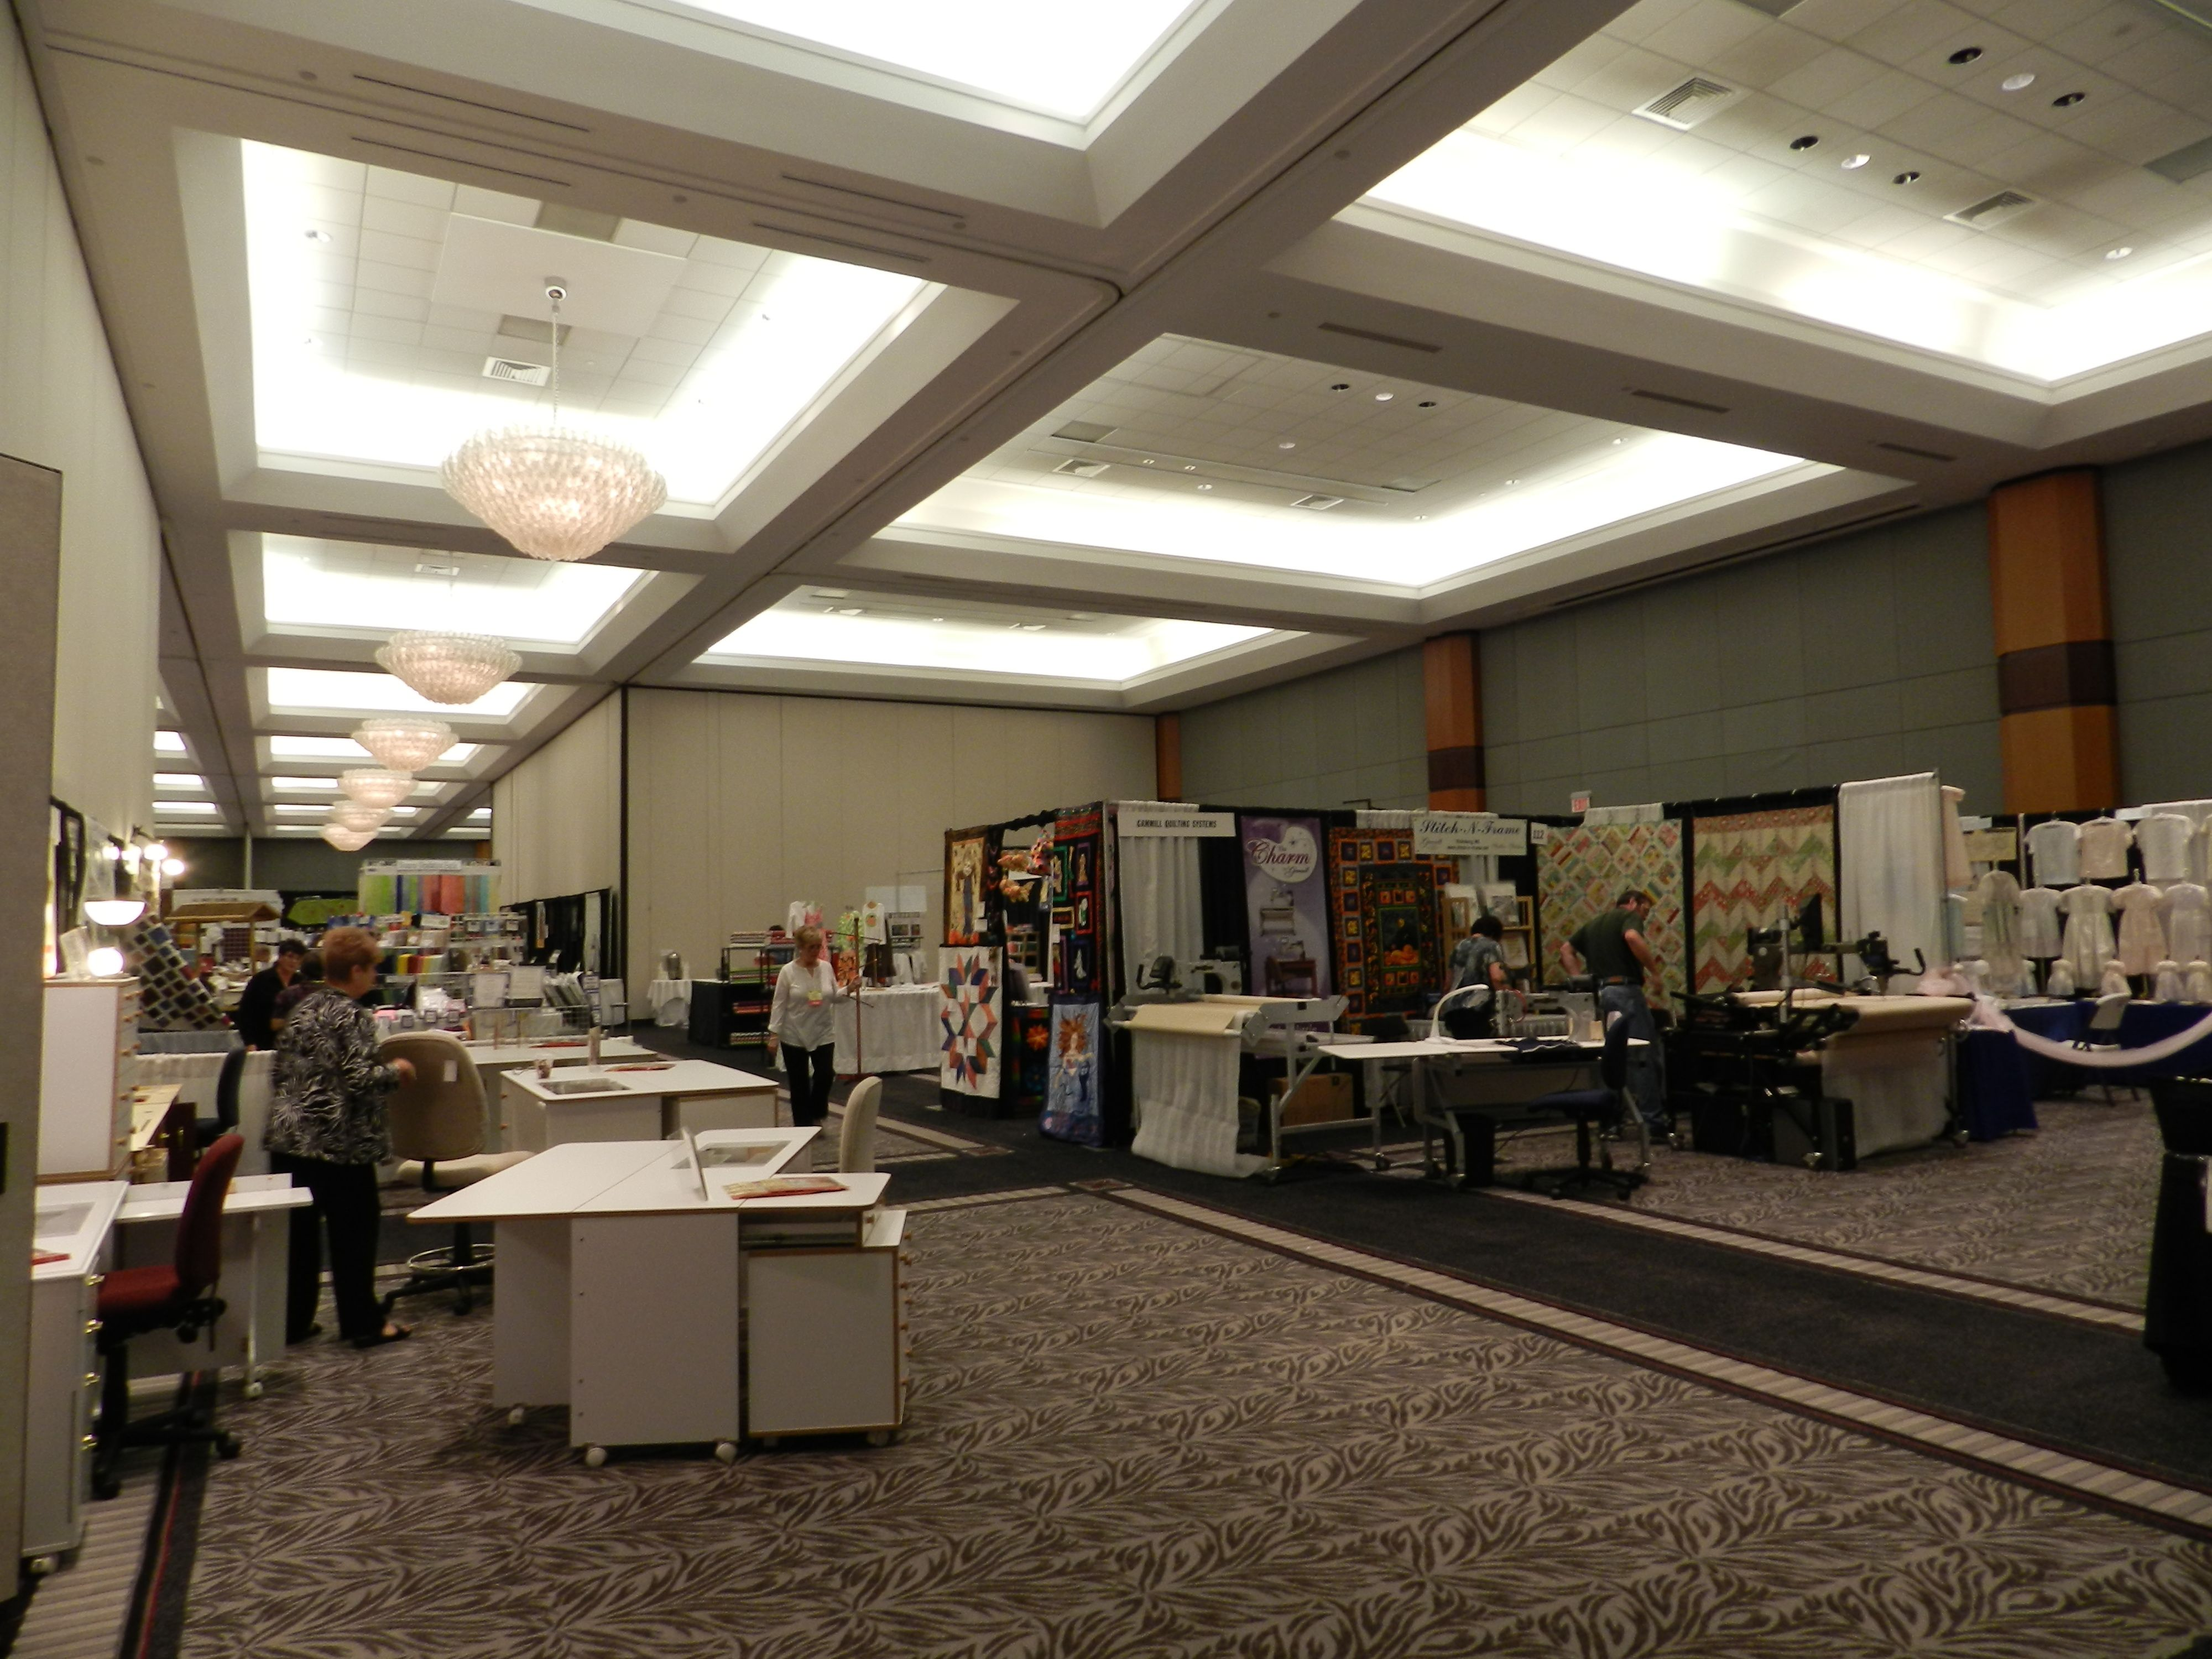 Sewing Expo At Cahaba Grand Conference Center Decor Home Decor Room